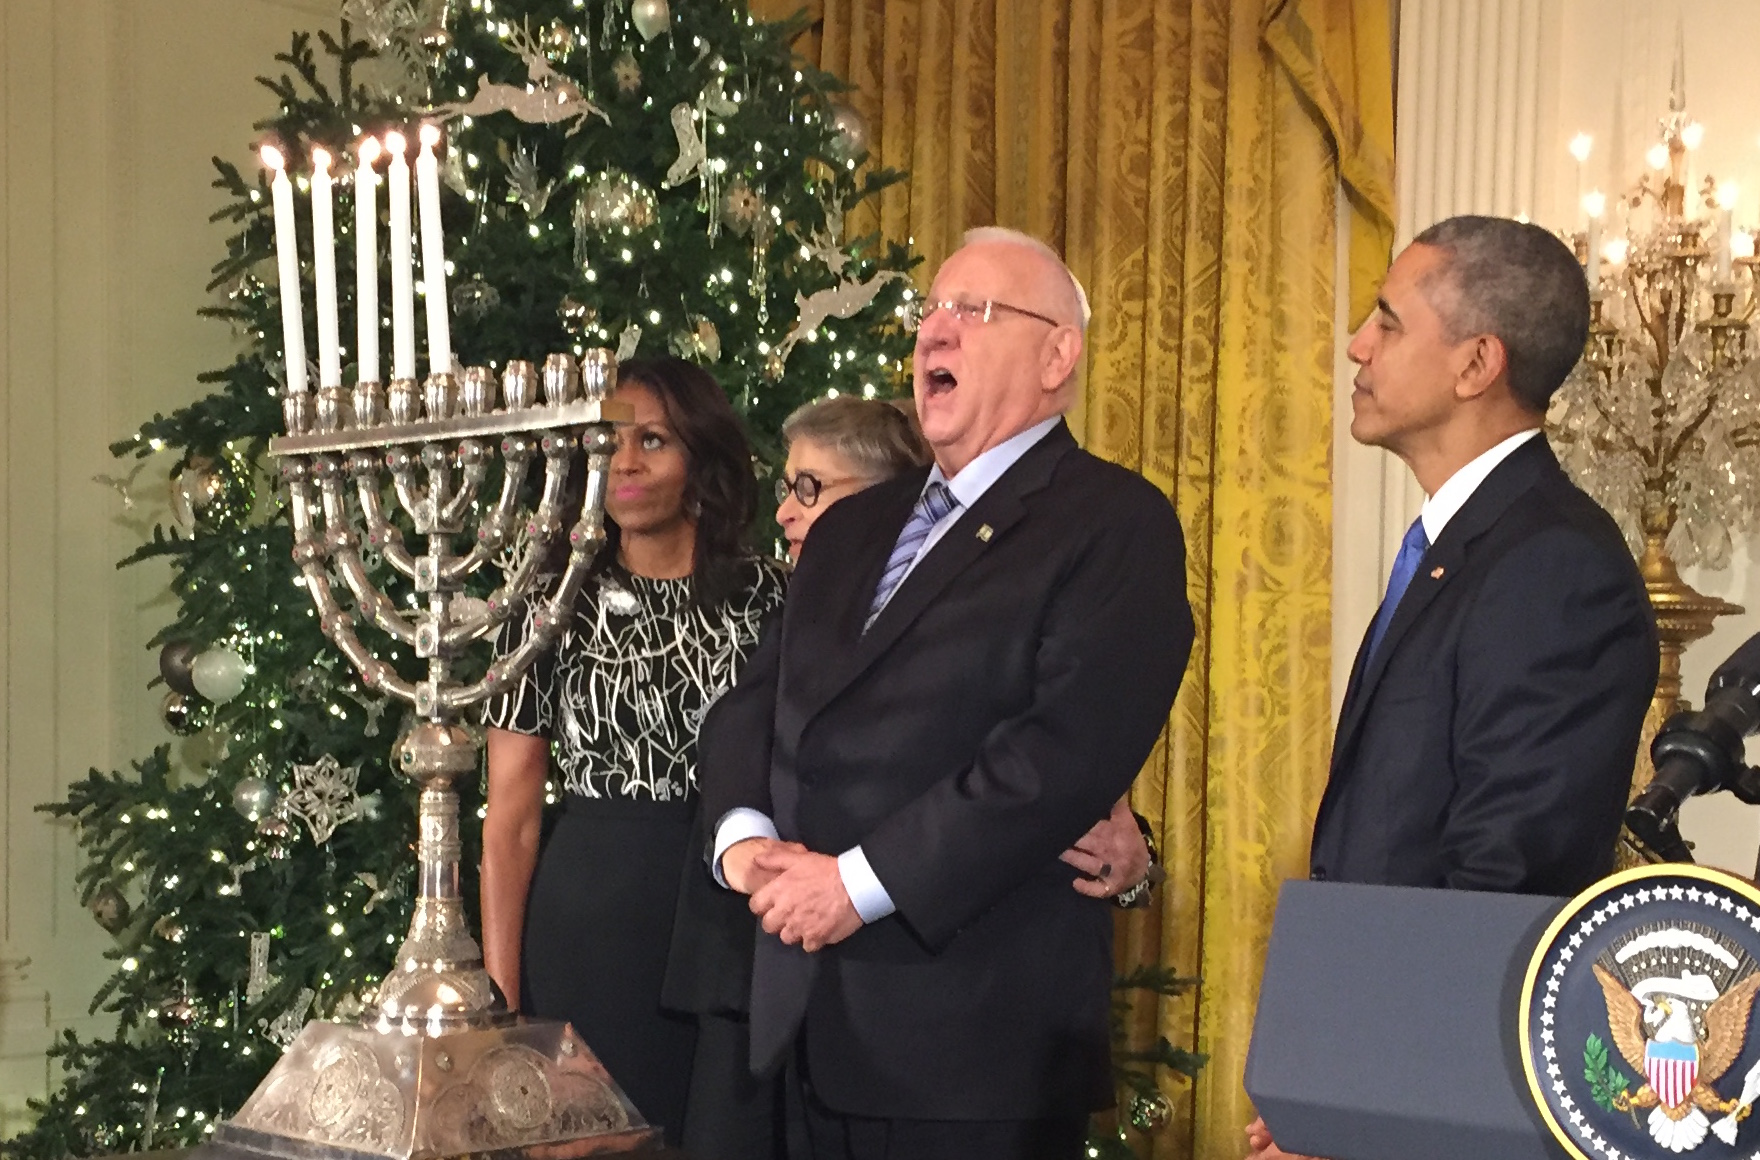 Israeli President Reuven Rivlin singing Maoz Tsur at a White House Hanukkah party while President Barack Obama and Rabbi Susan Talve of St. Louis look on, Dec. 9, 2015. (Steve Sheffey)